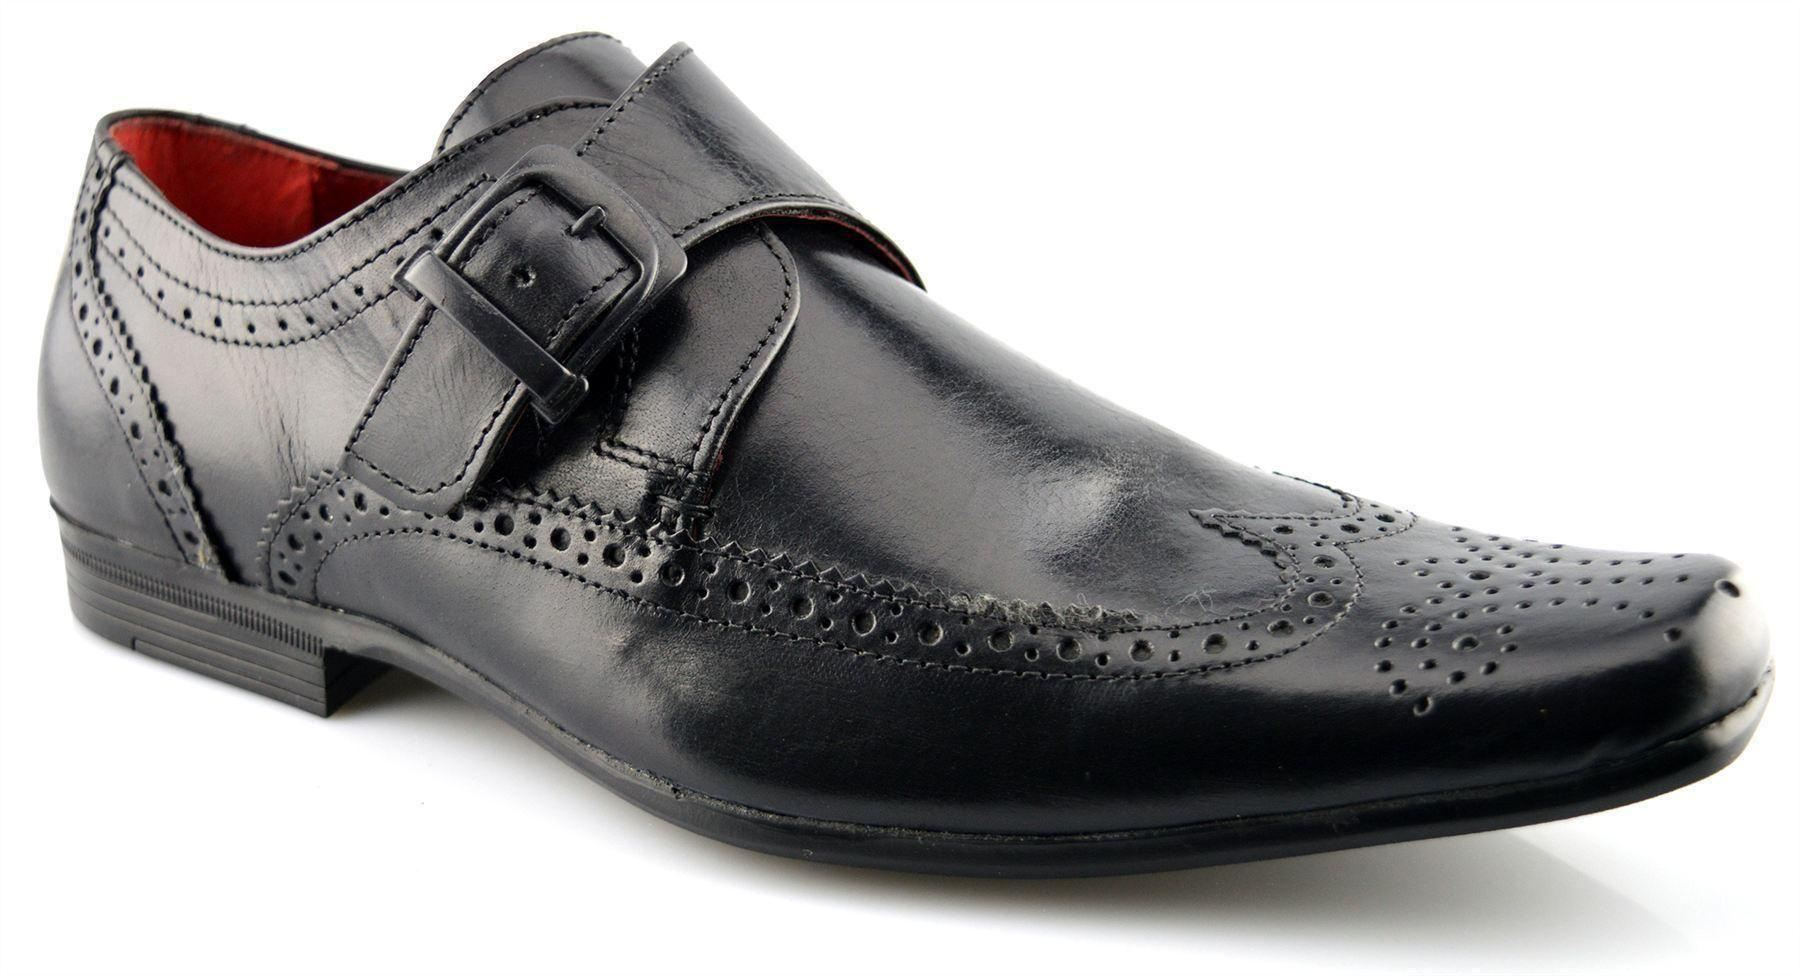 mens new leather single monk brogues wedding dress